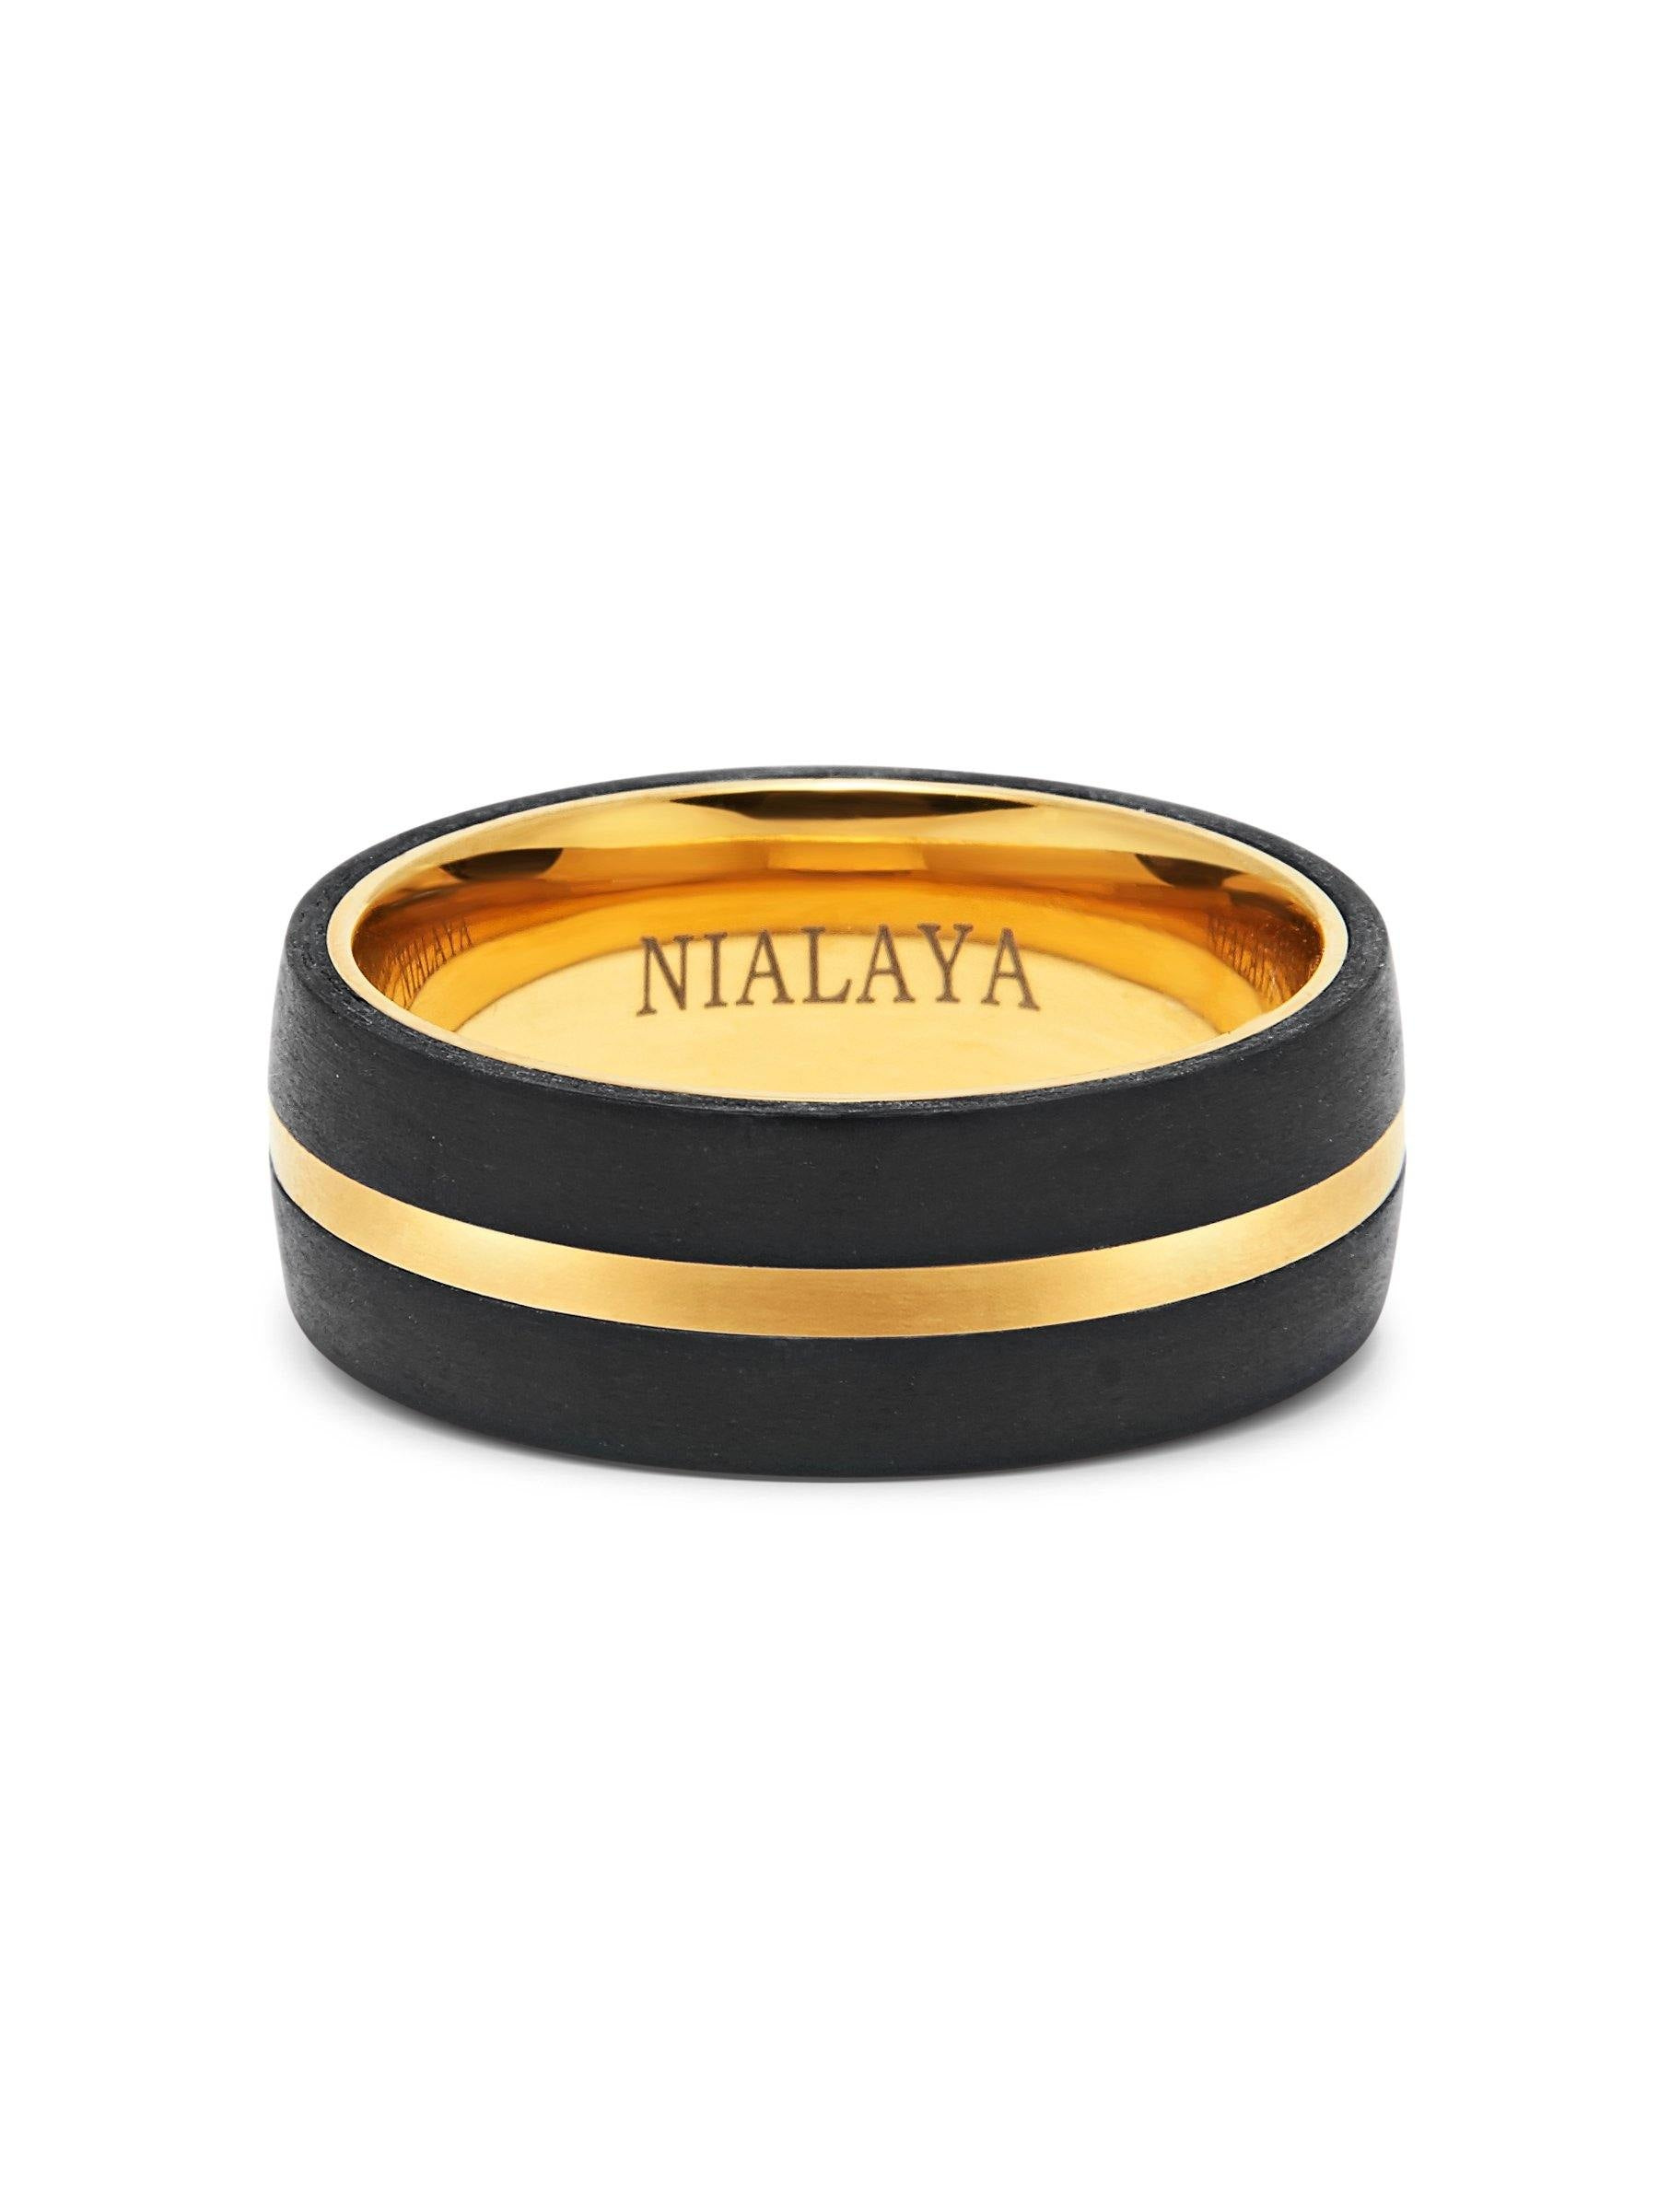 Men's Carbon Fiber Ring with Gold Detail - NIALAYA INC